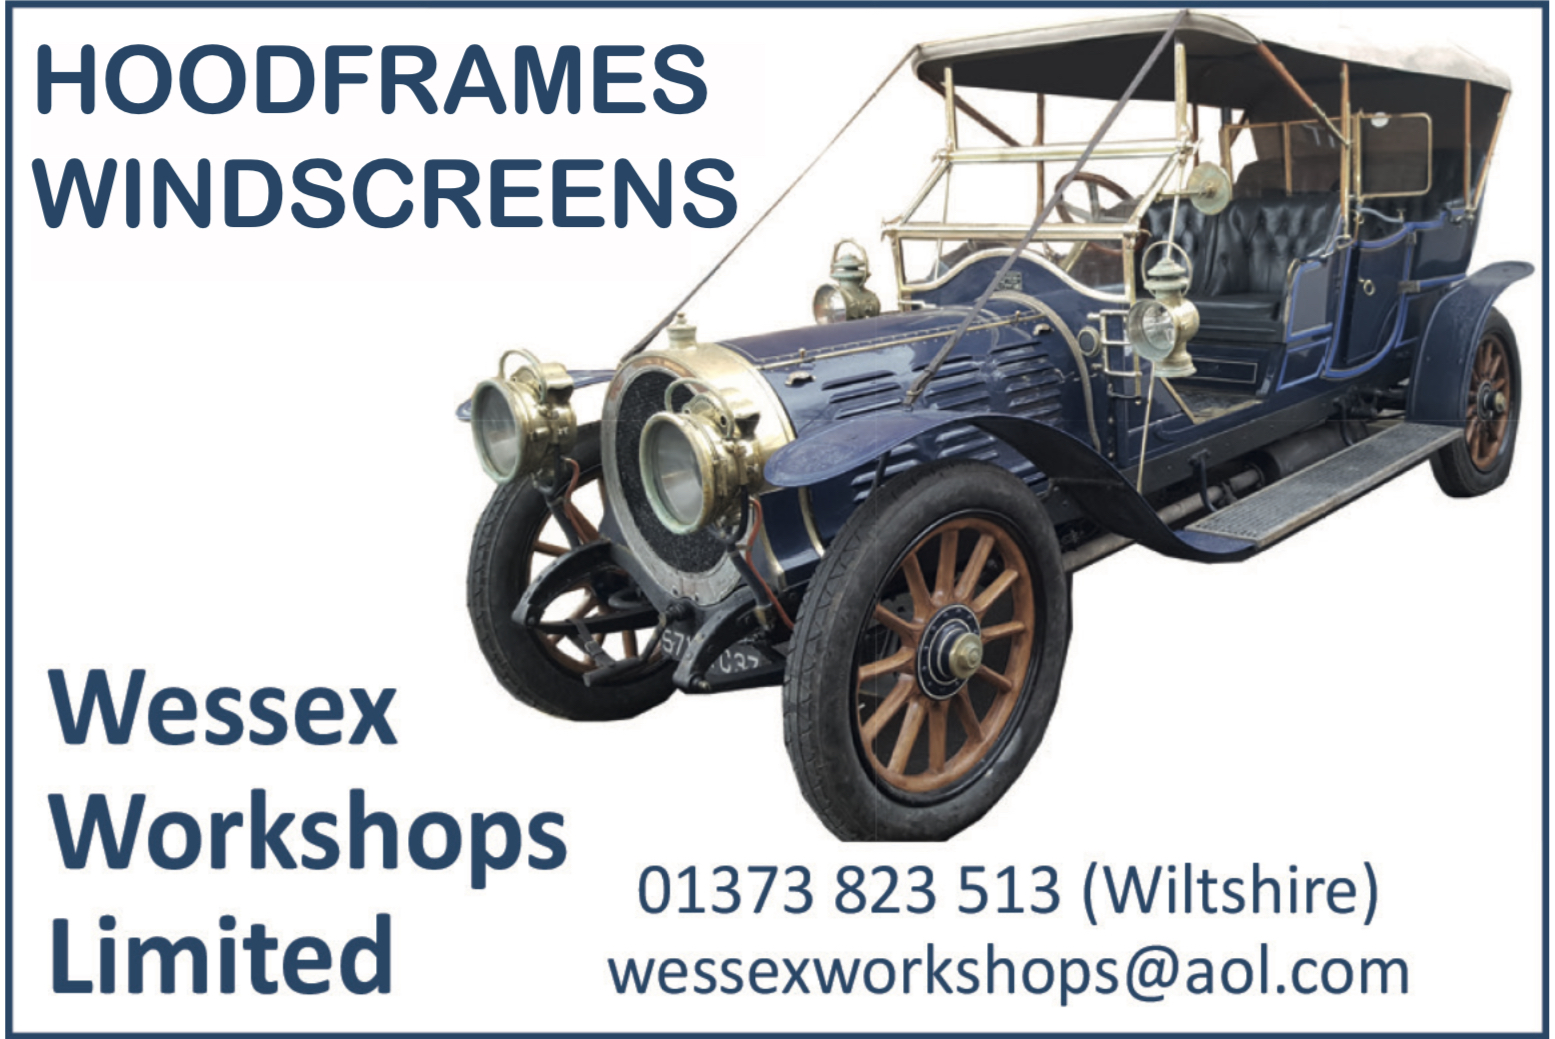 Hoods frames and windscreens